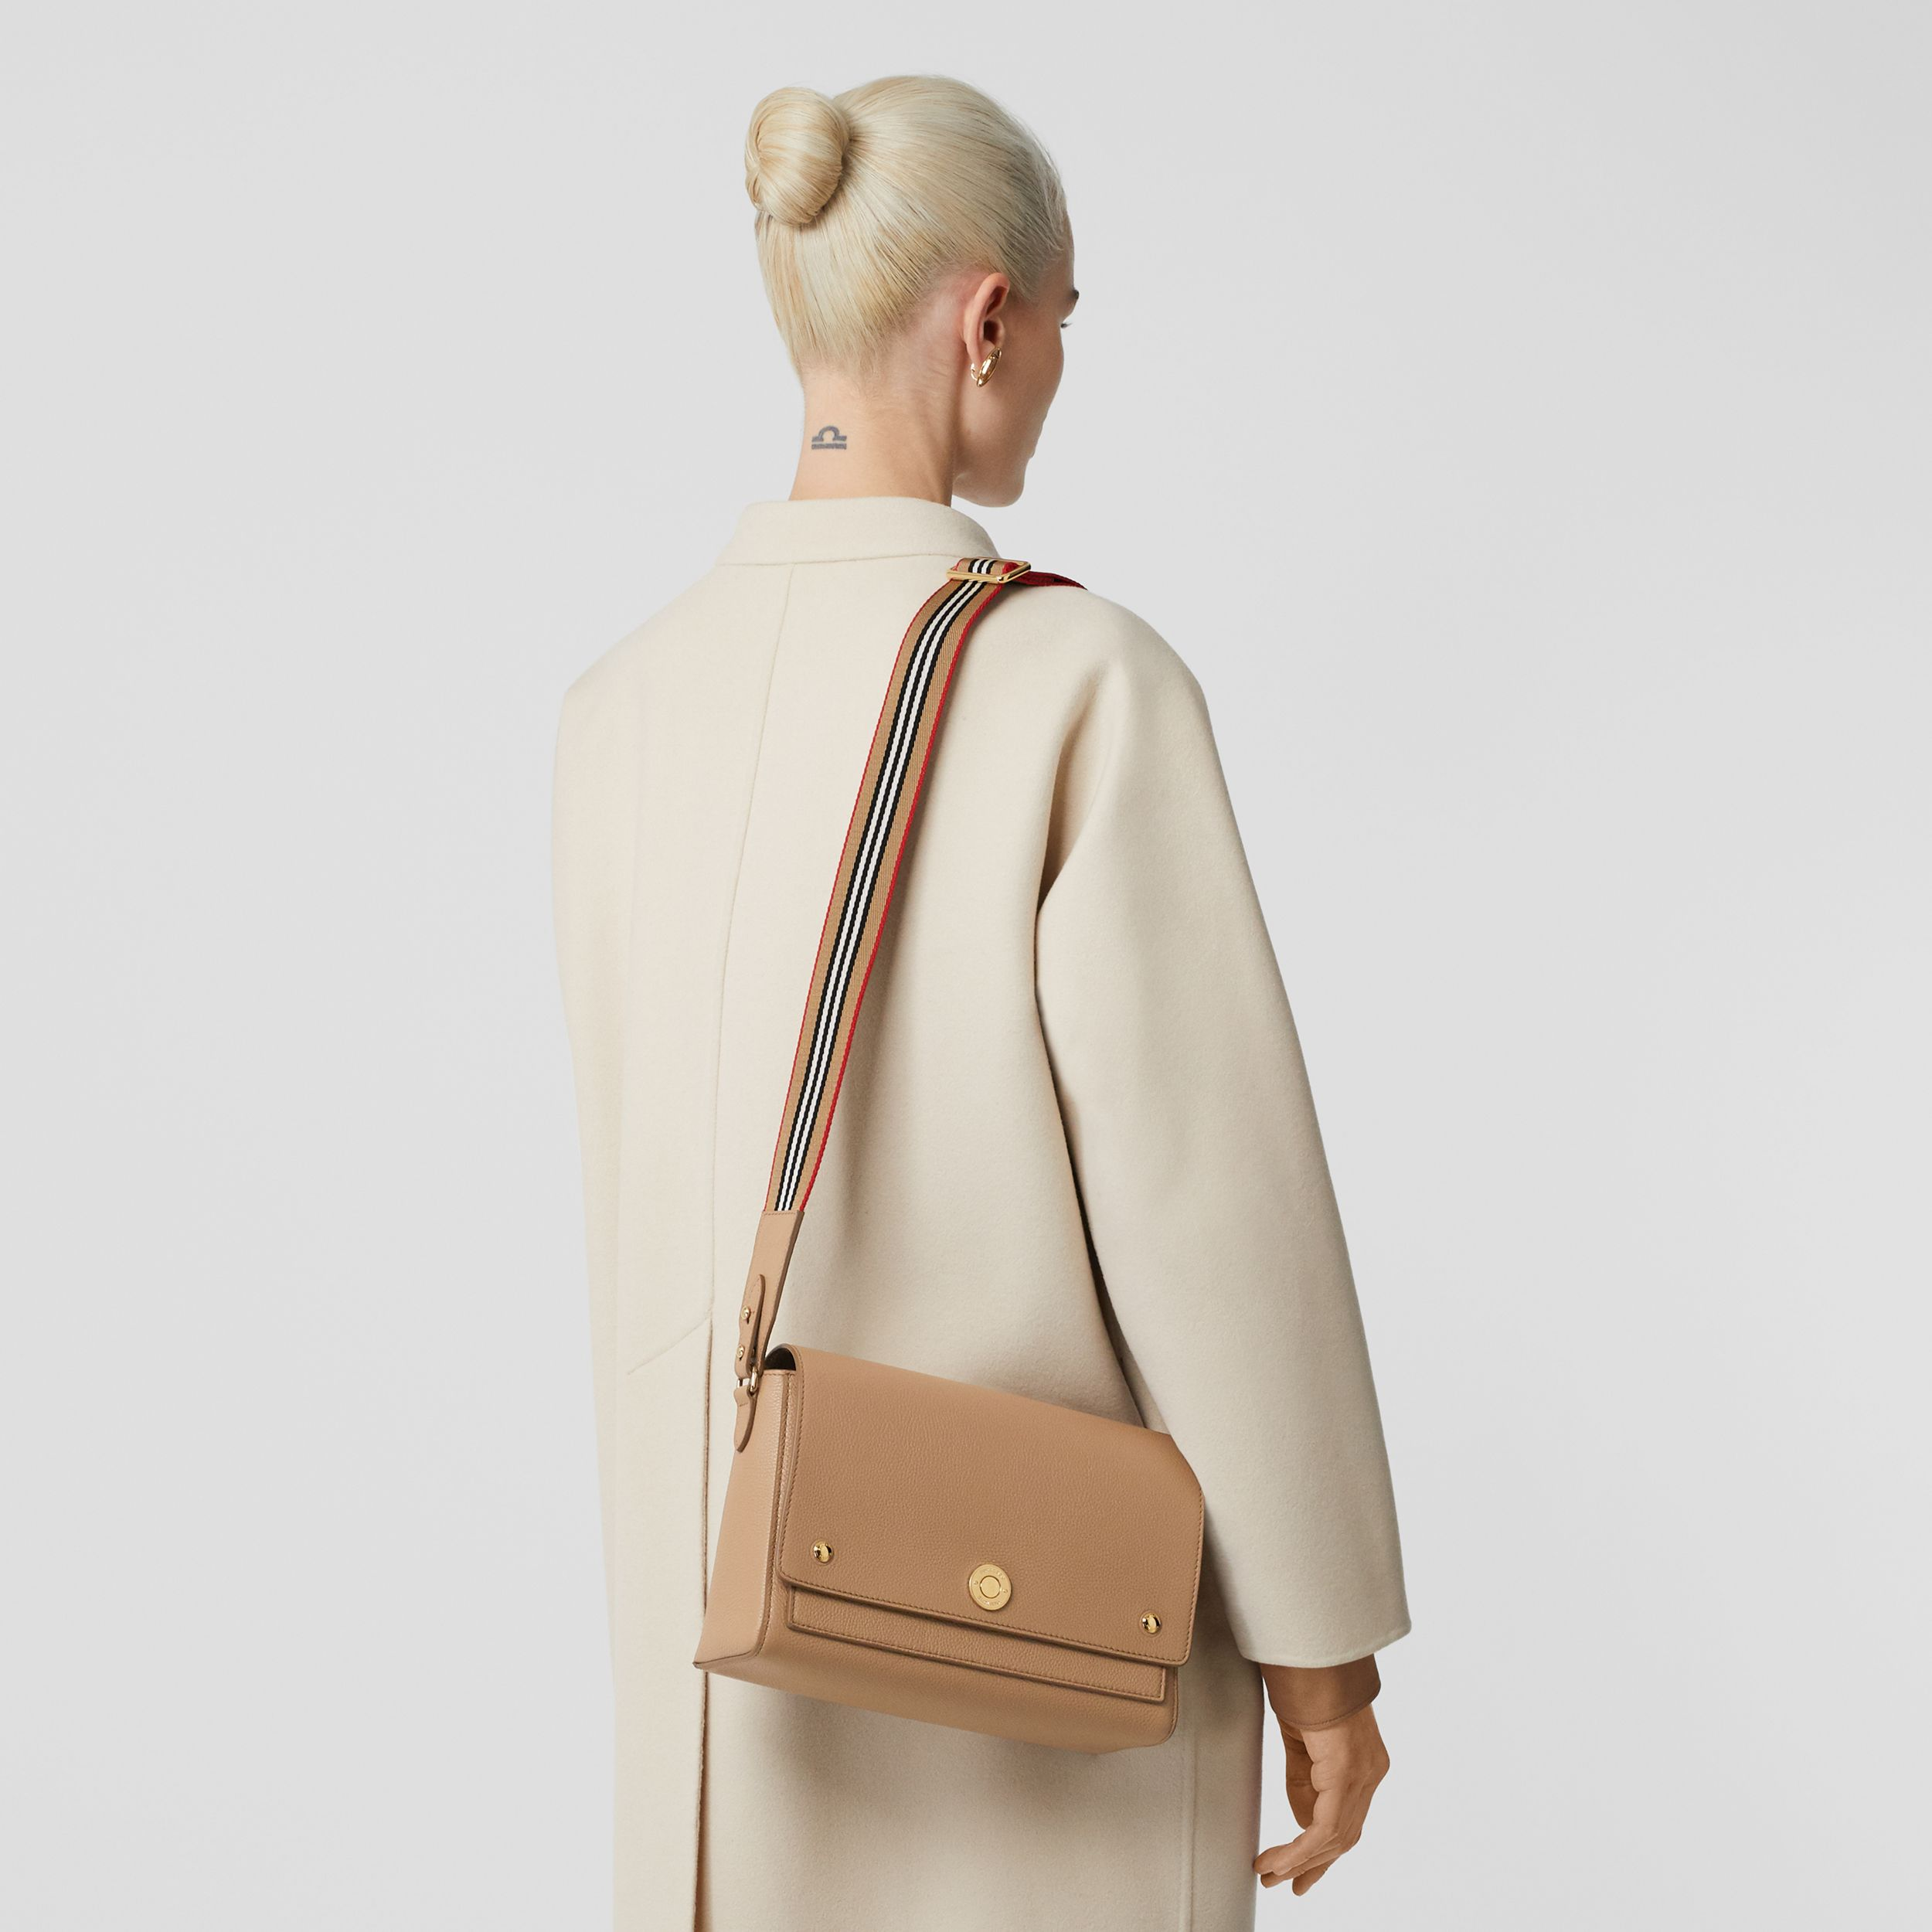 Grainy Leather Note Crossbody Bag in Camel - Women | Burberry Hong Kong S.A.R. - 3